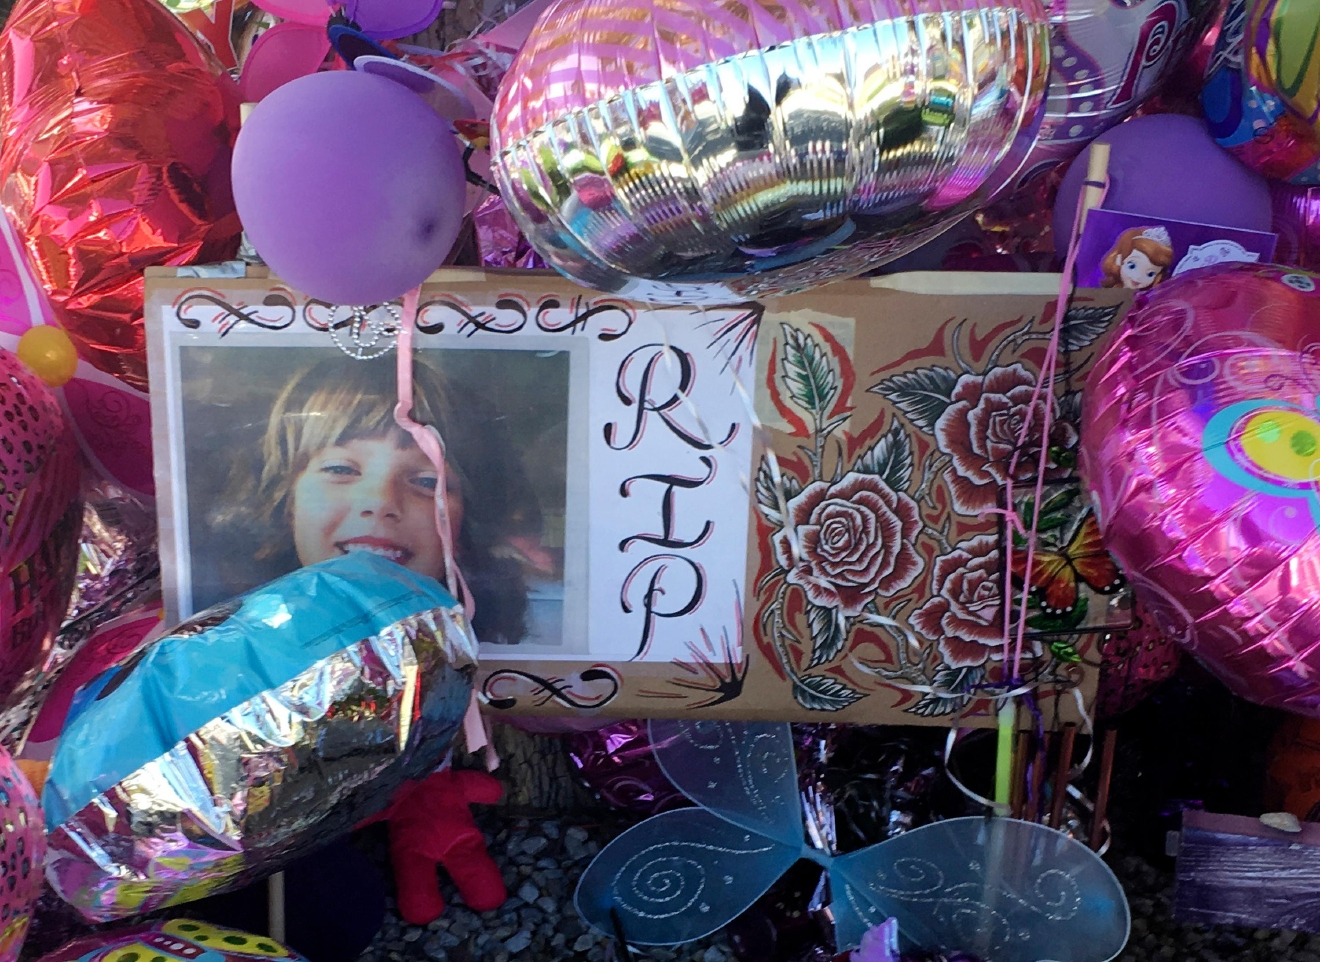 A picture of Victoria Martens, a 10-year-old Albuquerque girl brutally murdered last week, is placed in a memorial outside her former Albuquerque apartment on Monday, Aug. 29, 2016.  (AP Photo/Russell Contreras)